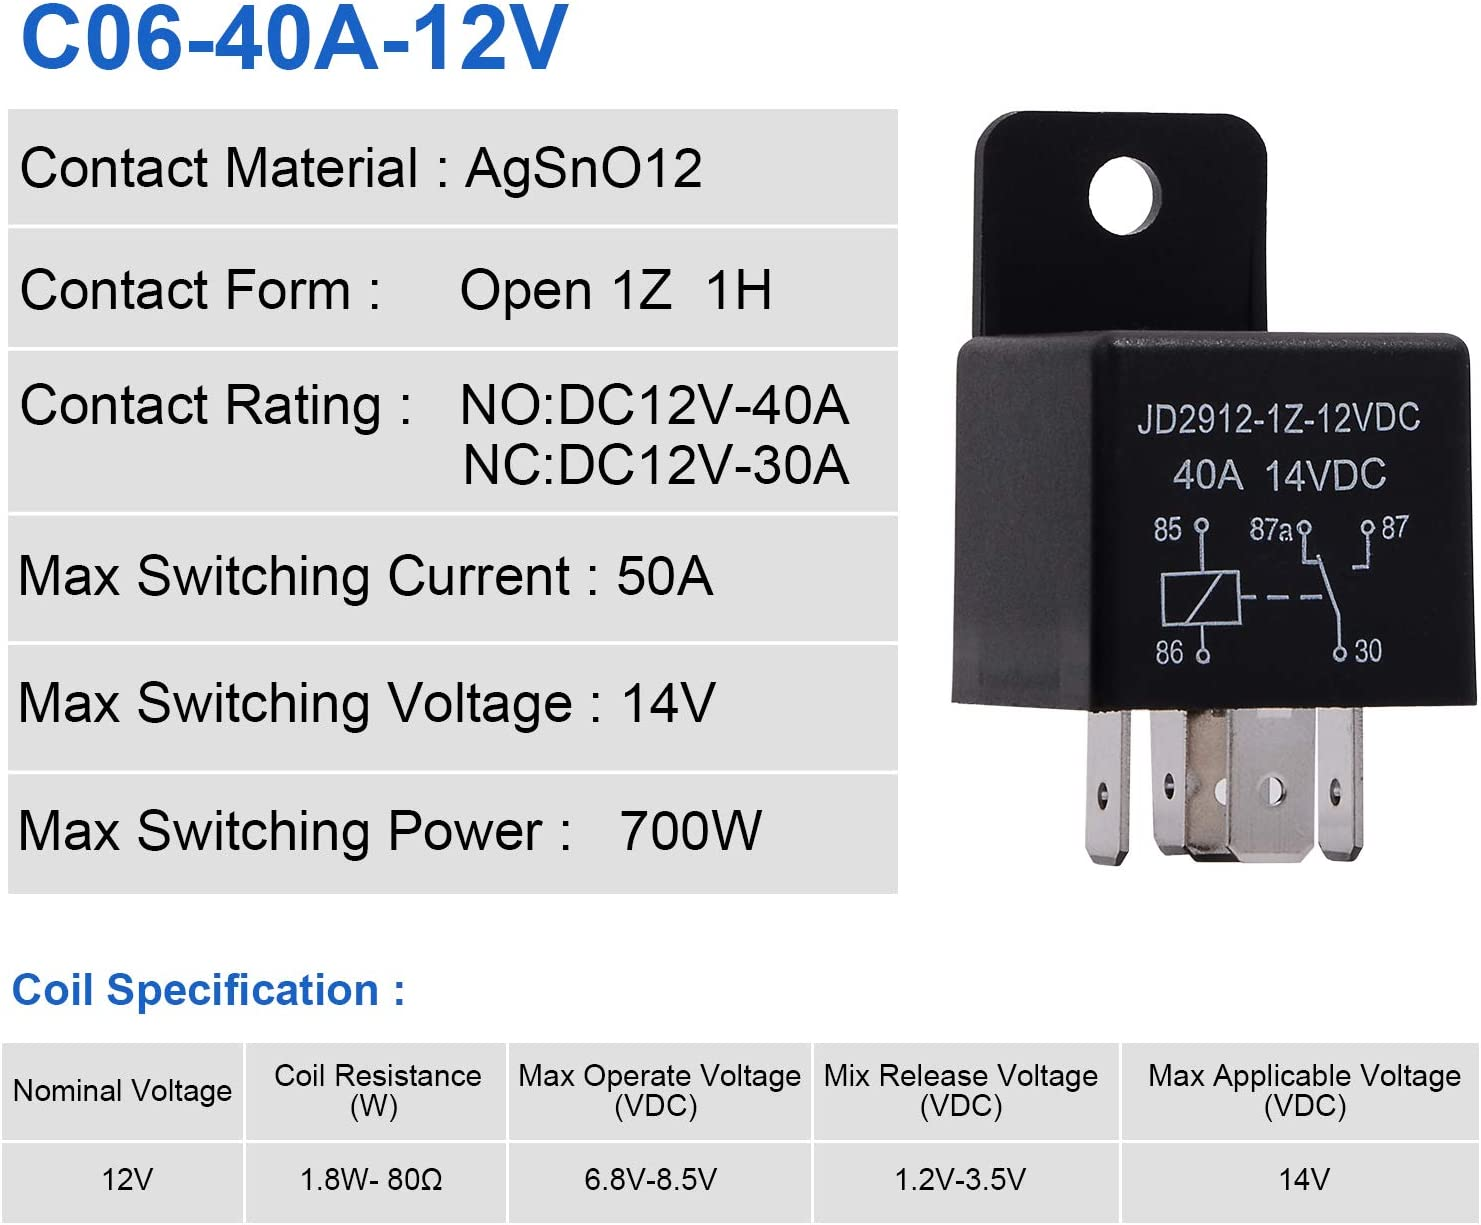 Auto Switches /& Starters Contactor Relay Switch Power Ehdis 12V Motor Relay 5 Pin Coil 40amp Spdt Model No.: JD2912-1Z-12VDC 40A 14VDC 2 Pack